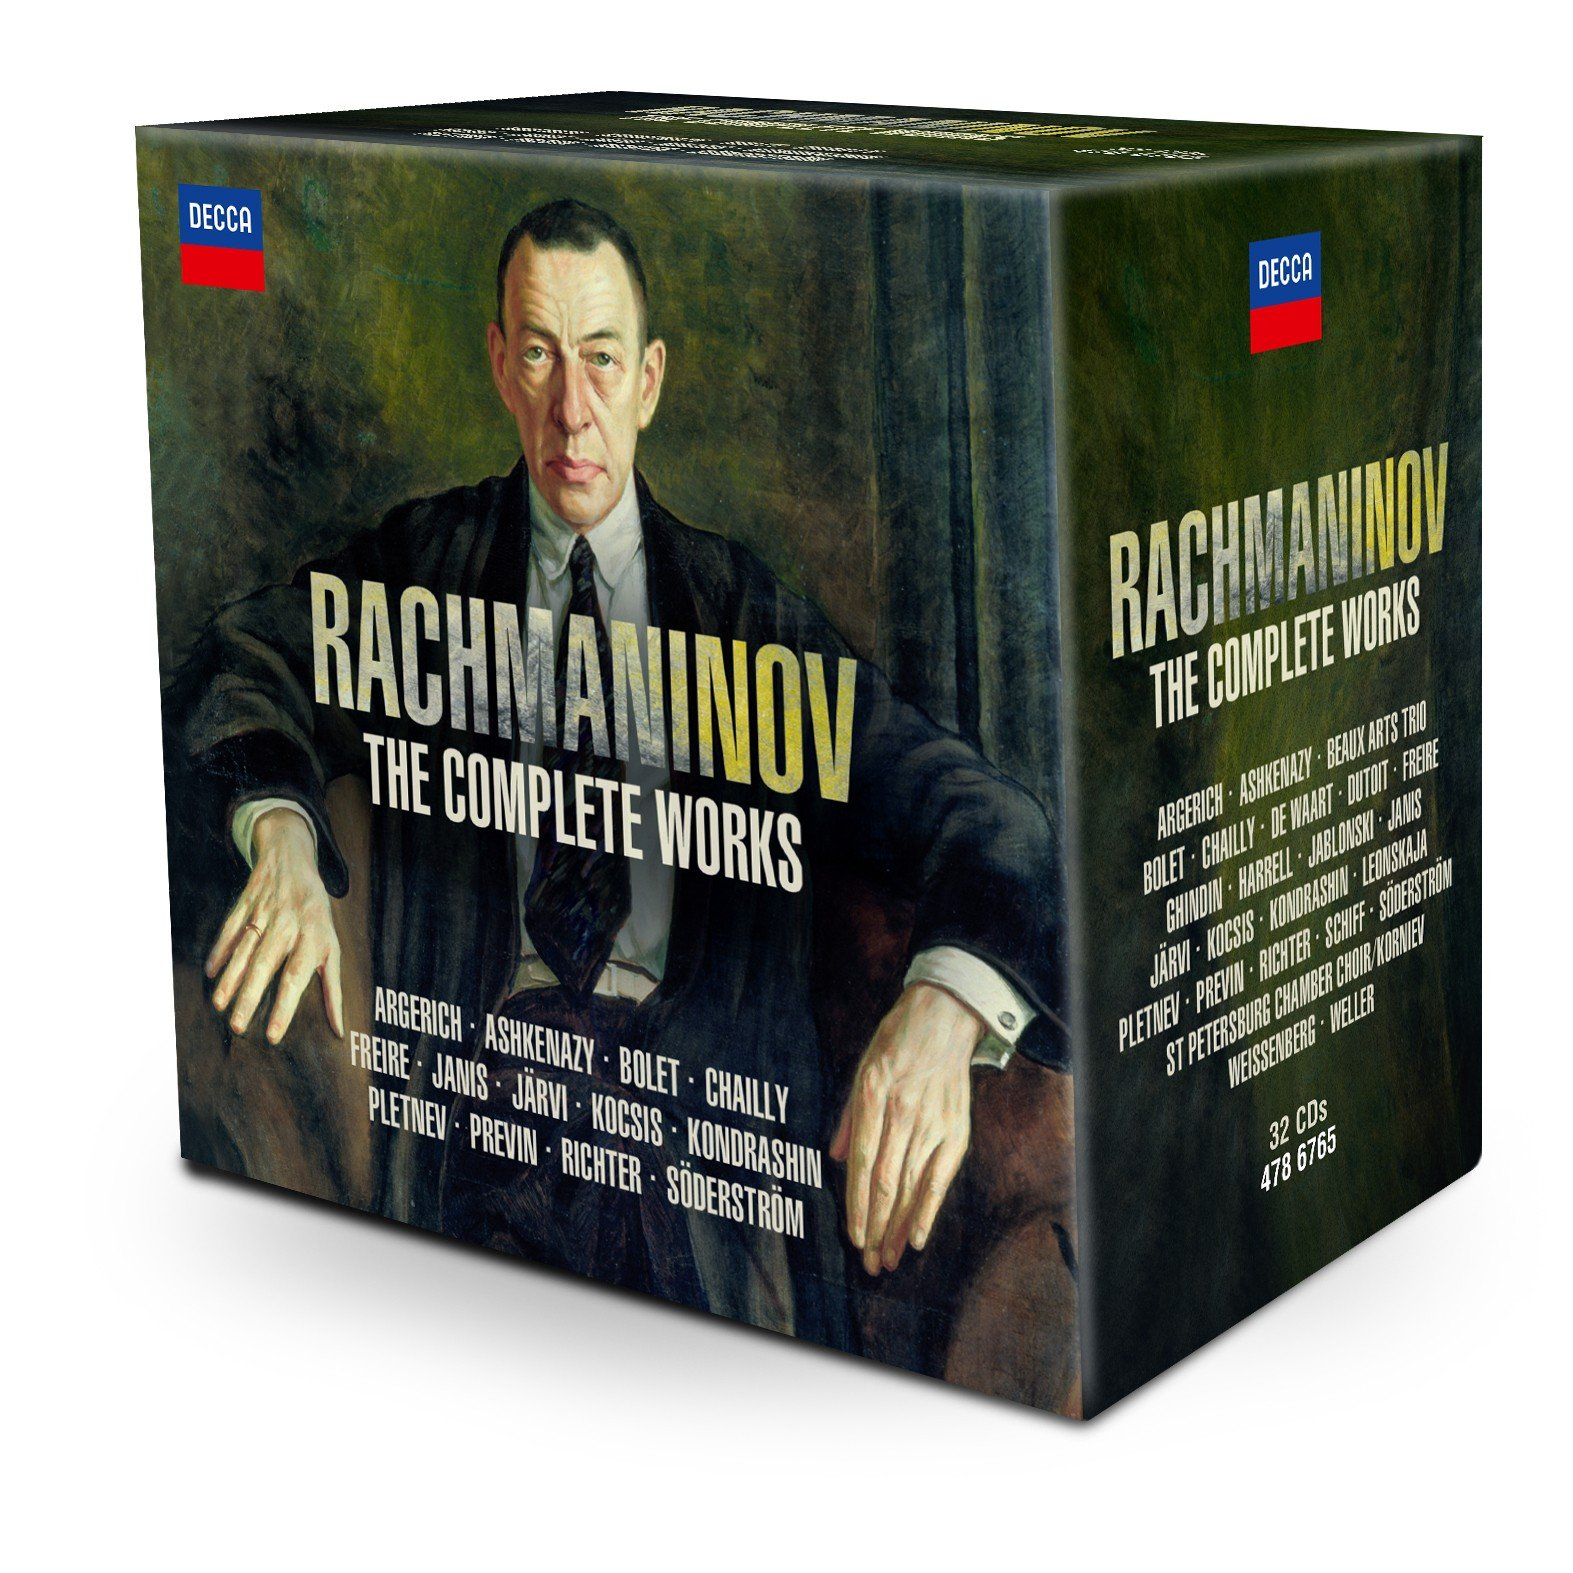 Rachmaninov: The Complete Works [32 CD][Limited Edition]